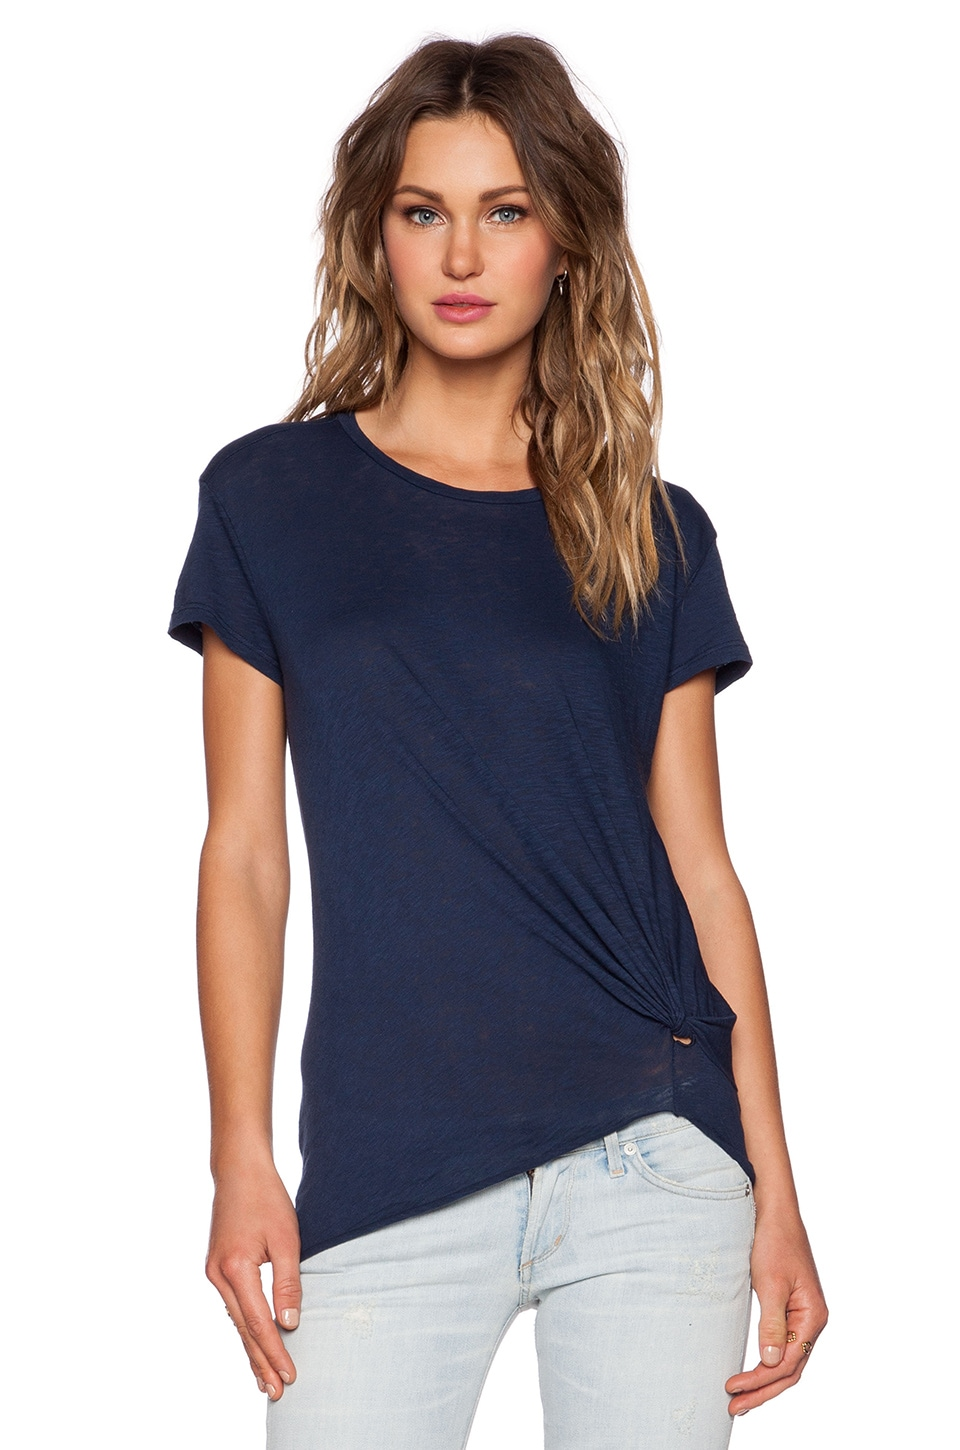 Stateside Gathered Tee in Navy